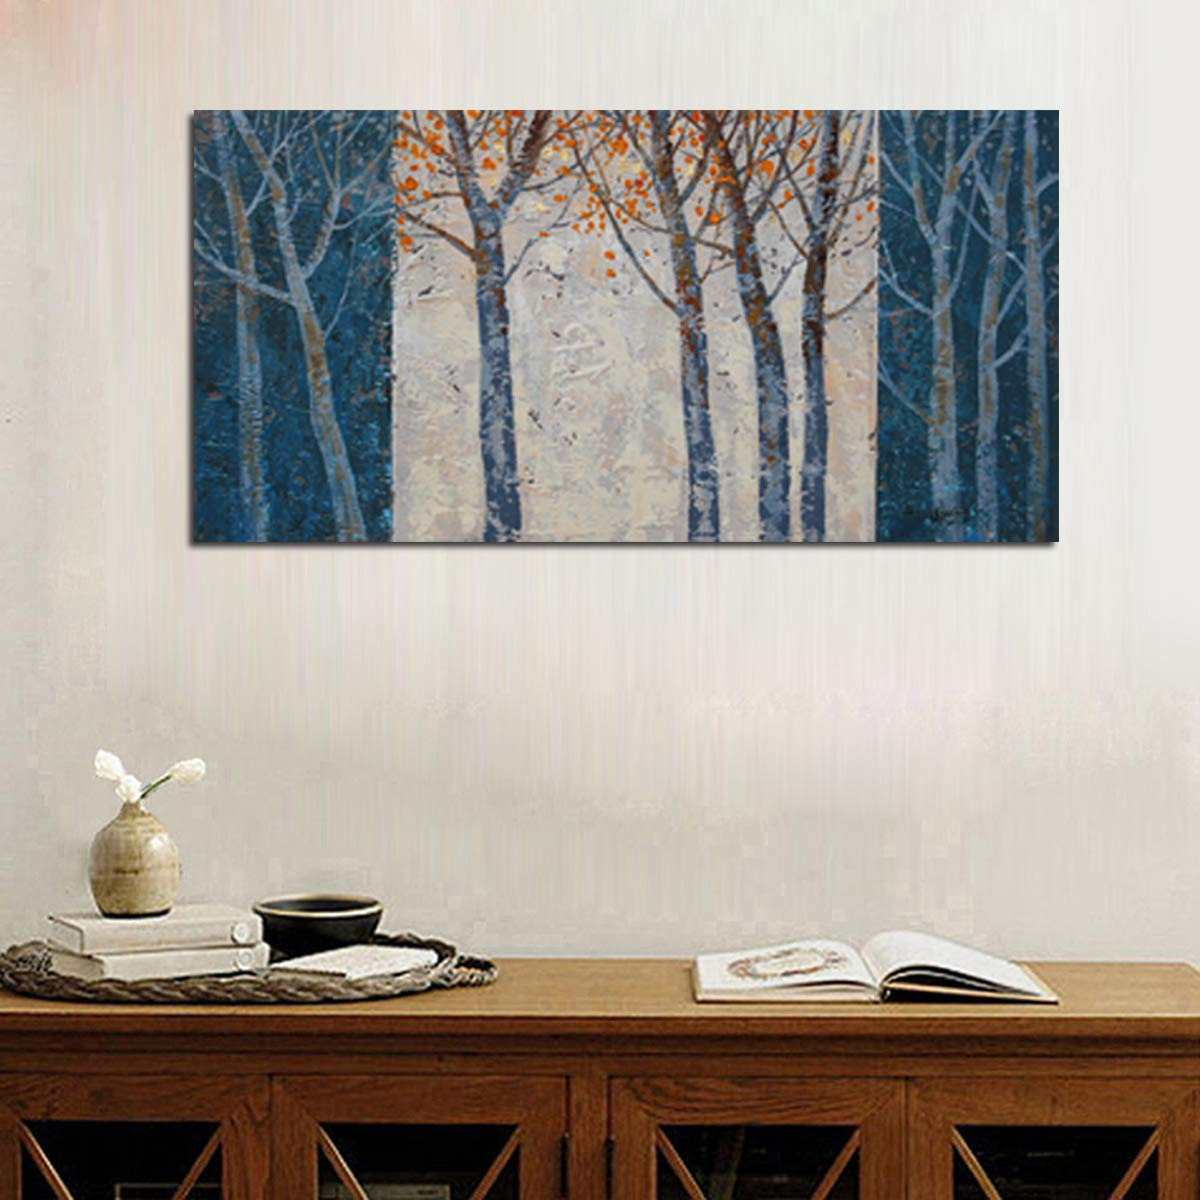 Arjun Riyue Canvas Wall Art Prints Forest Tree Grey Blue Painting Contemporary Abstract Long Wood Picture Framed Ready to Hang for Living Room Bedroom Offfice Home Decor 40''x20'', Original Design by Arjun Riyue (Image #5)